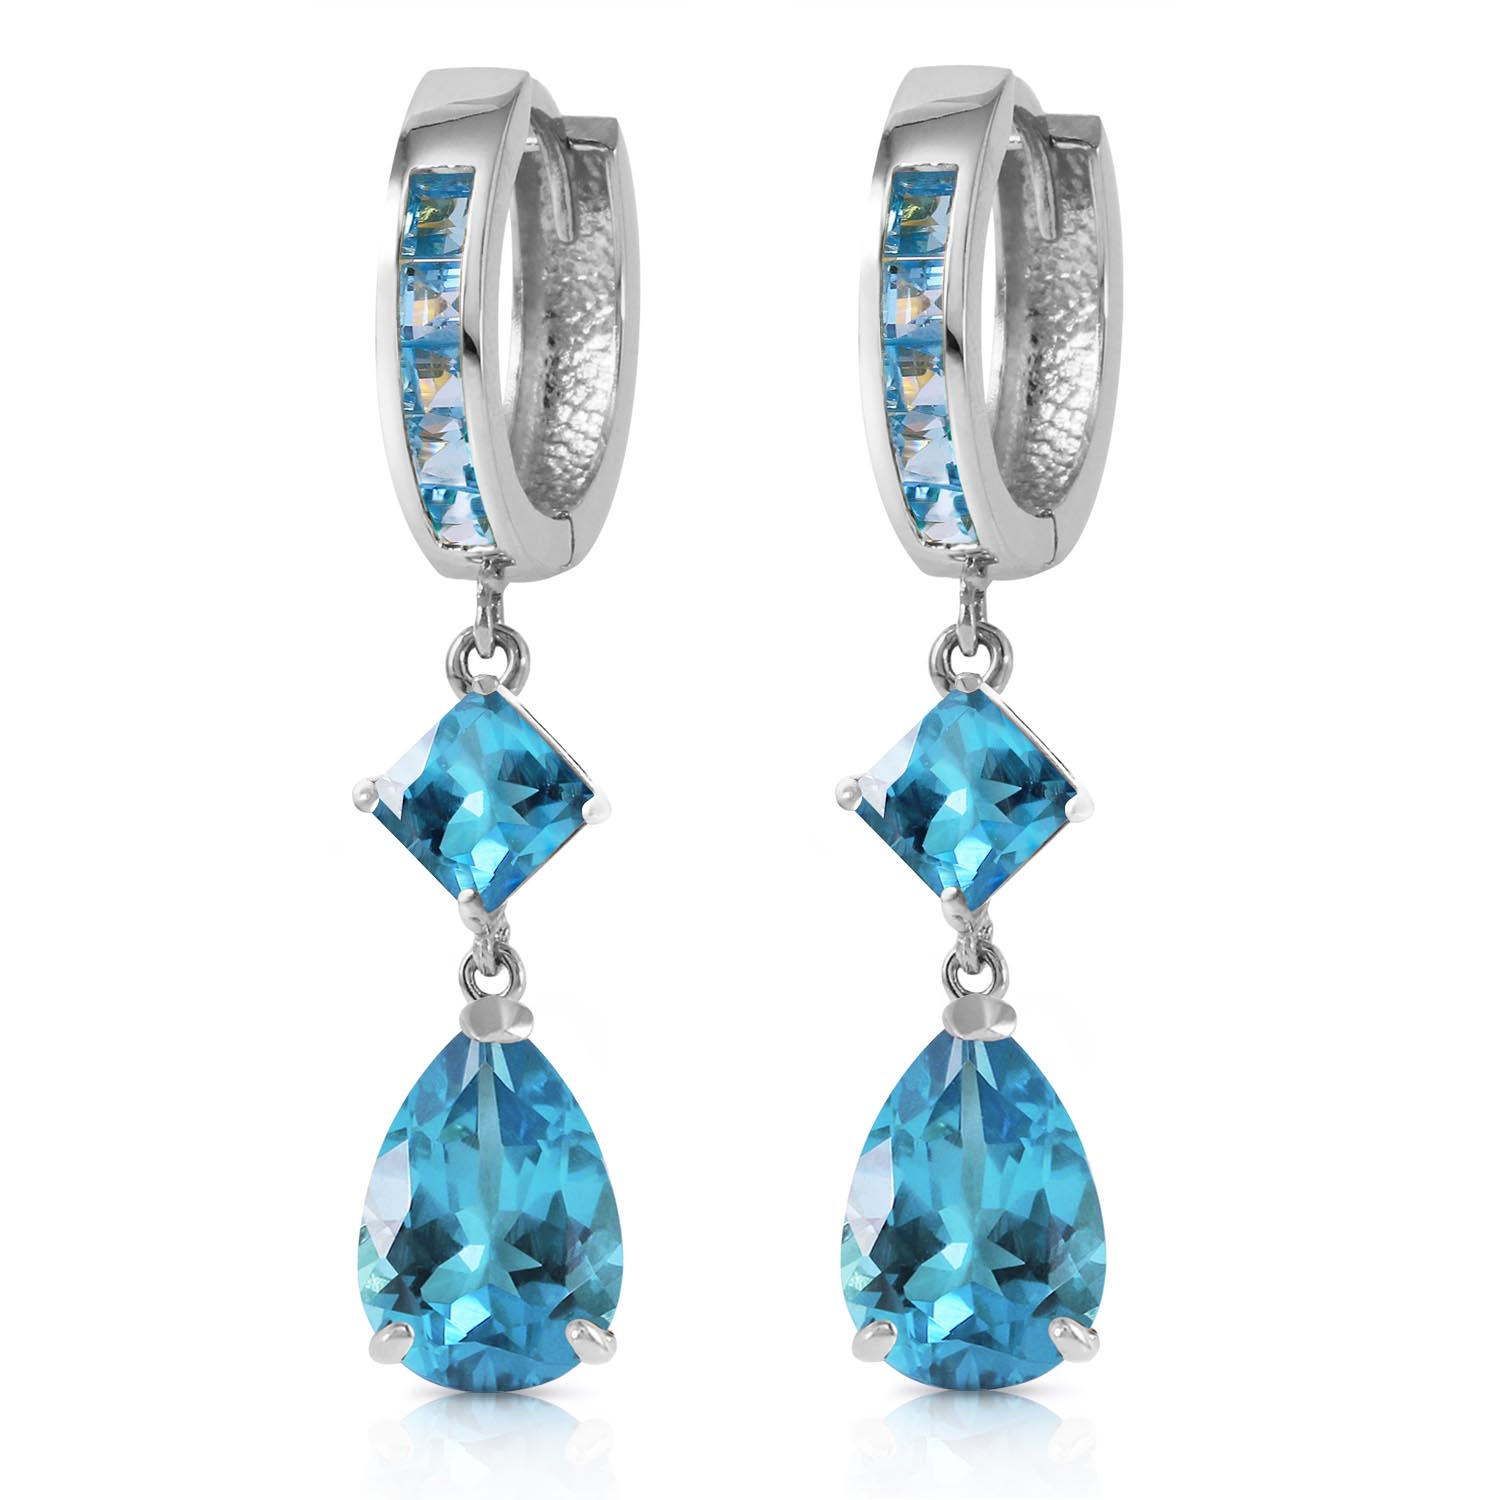 Blue Topaz Droplet Huggie Earrings 5.62ctw in 14K White Gold